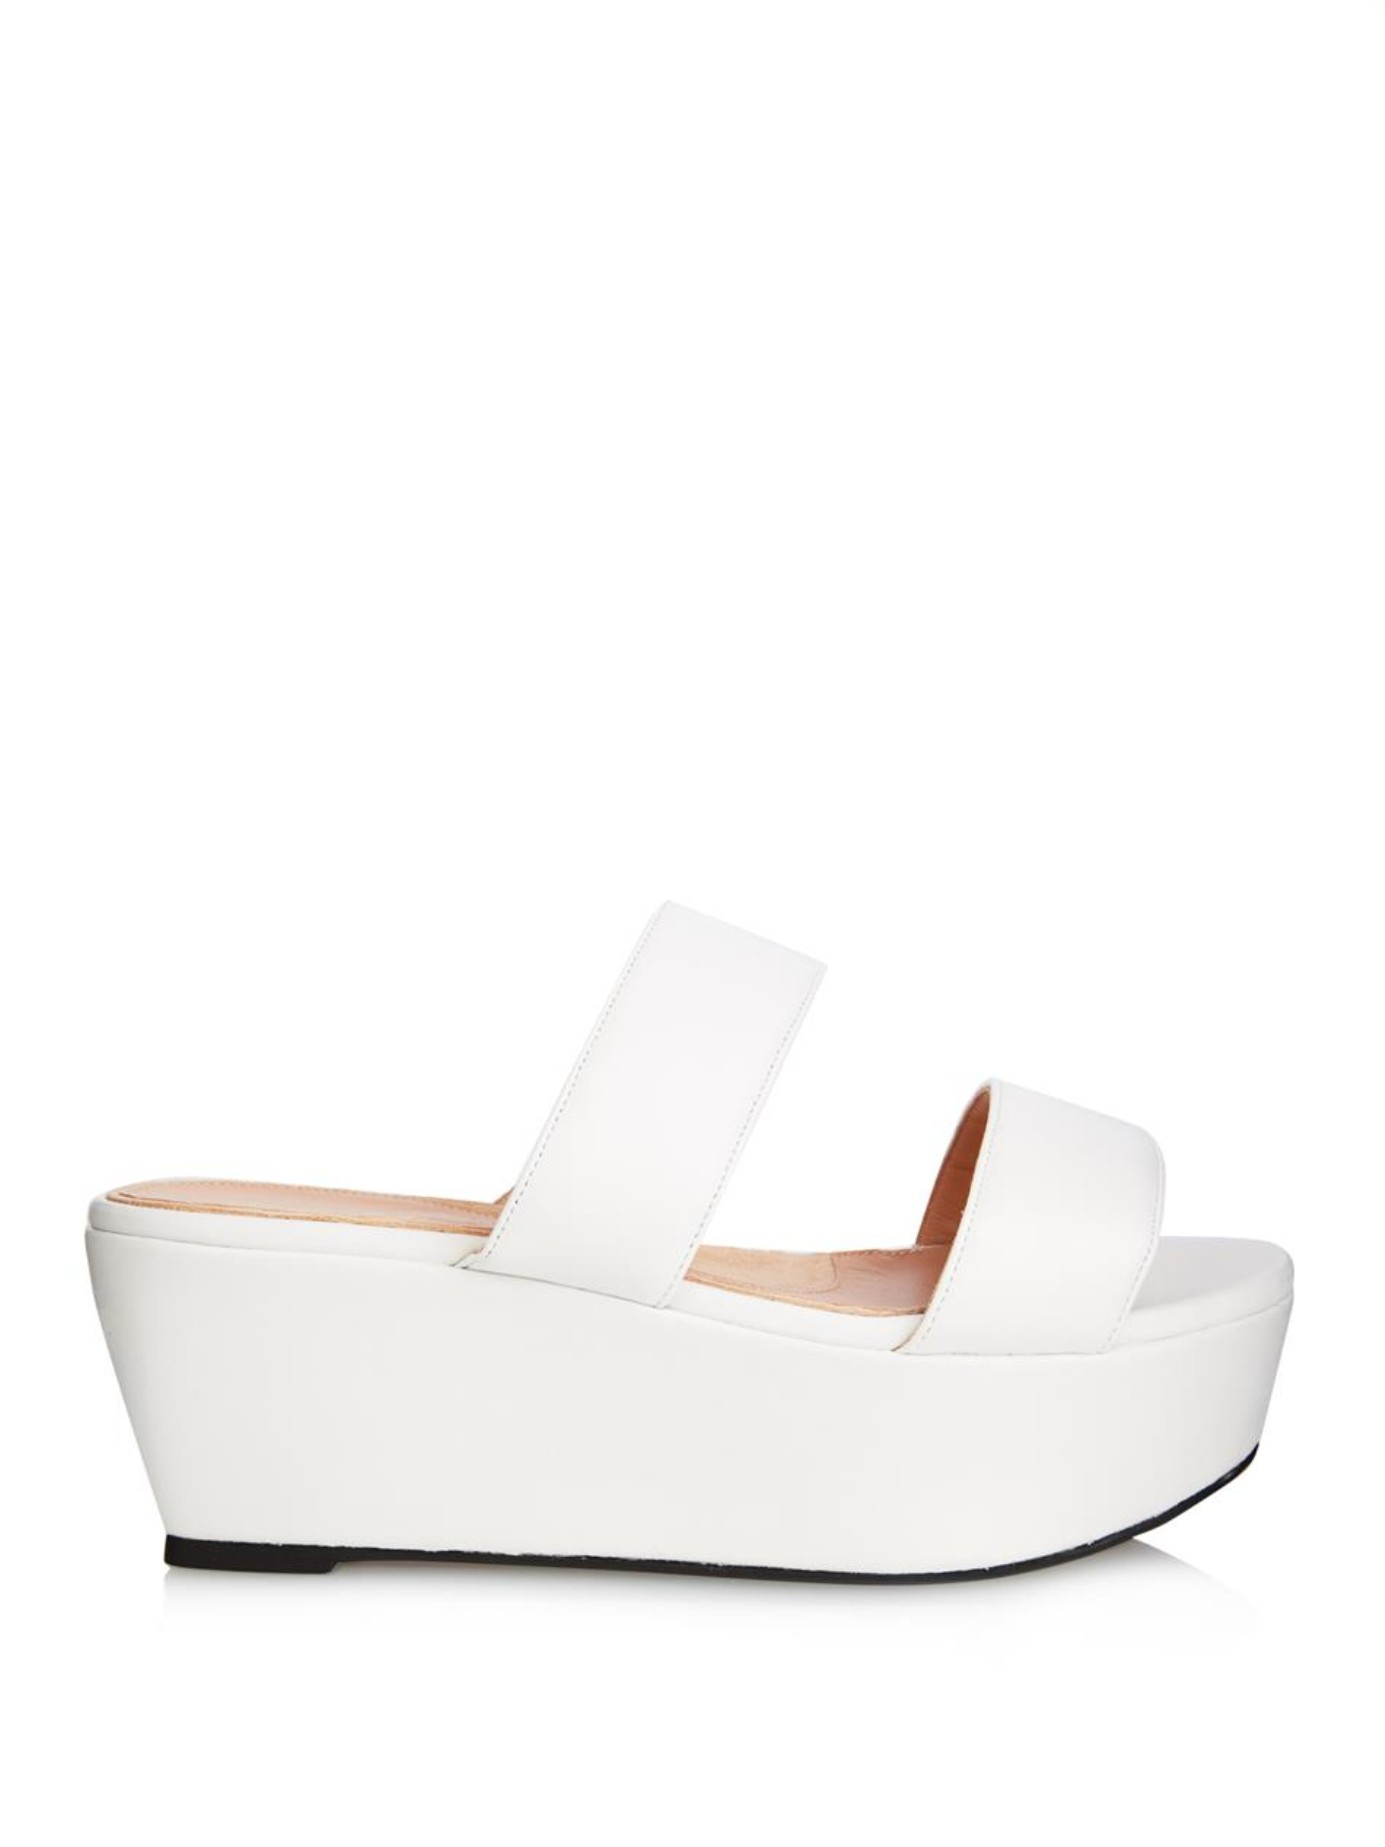 a83fdc50864 Lyst - Robert Clergerie Frazzia Leather Platform Slides in White